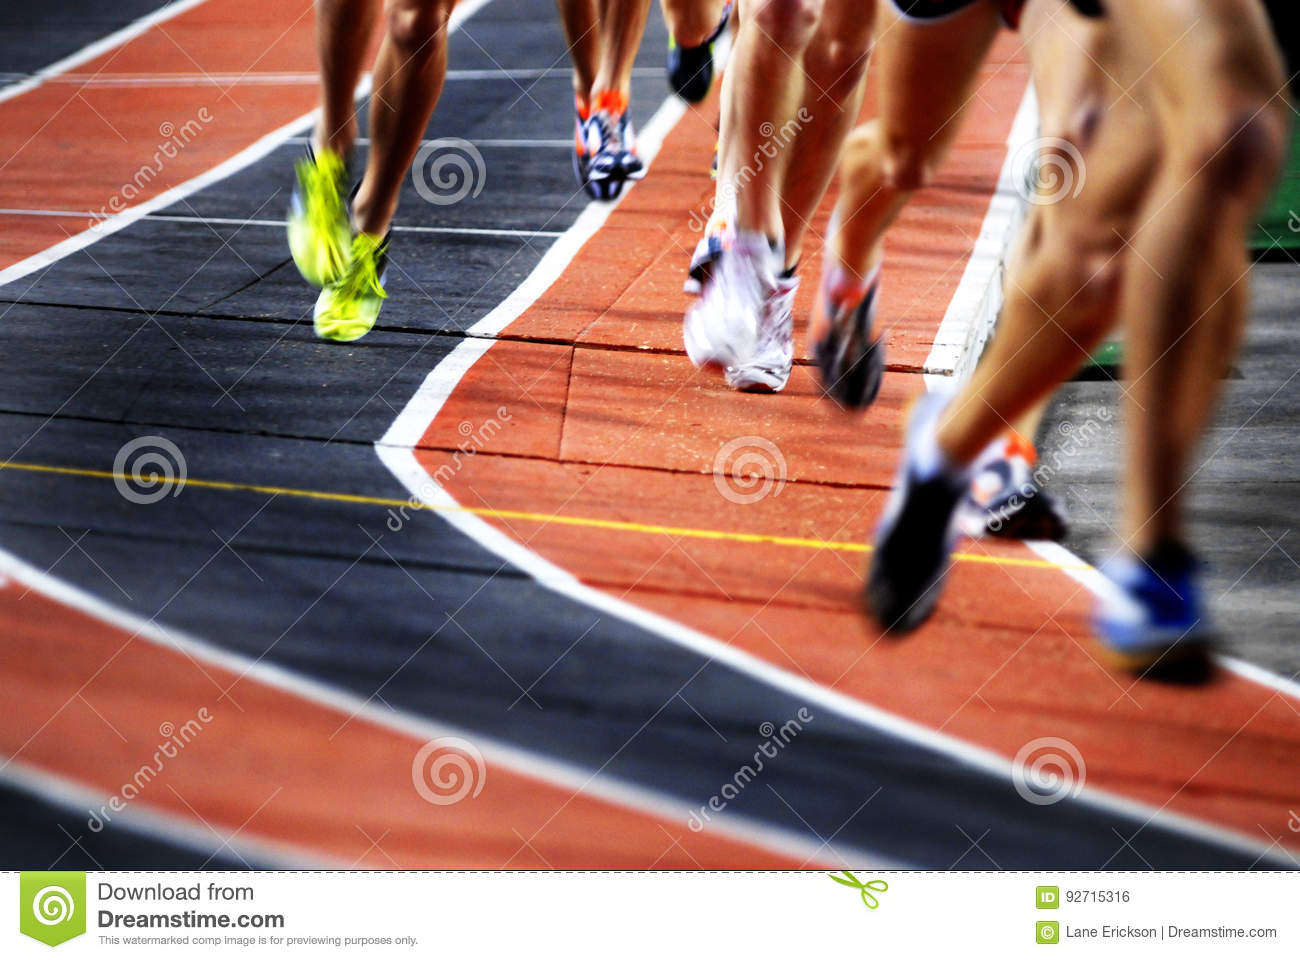 Running a Race on a Track Sports Competition